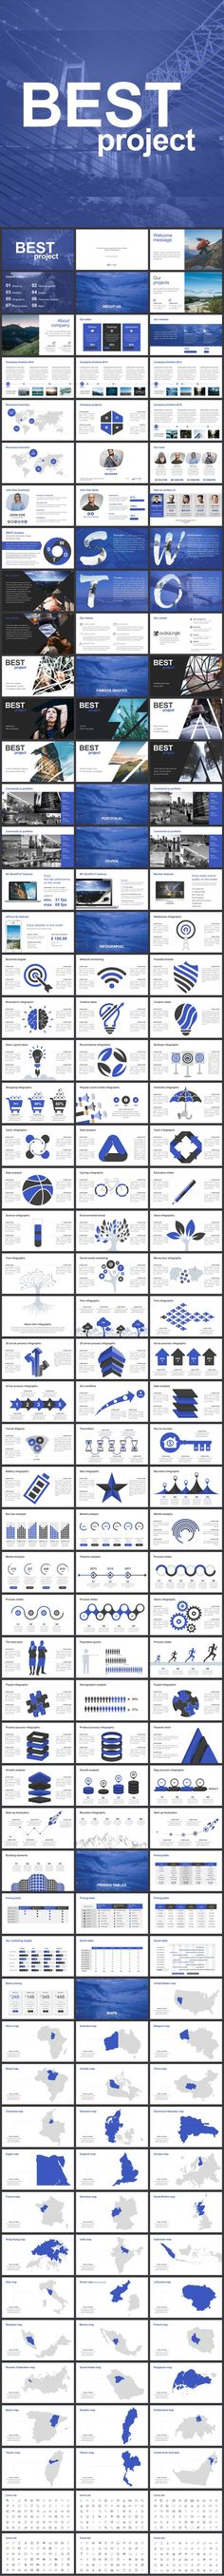 Business idea powerpoint presentation template powerpoint pptx business idea powerpoint presentation template powerpoint pptx business presentation powerpoint download httpsgraphic powerpoint template flashek Image collections